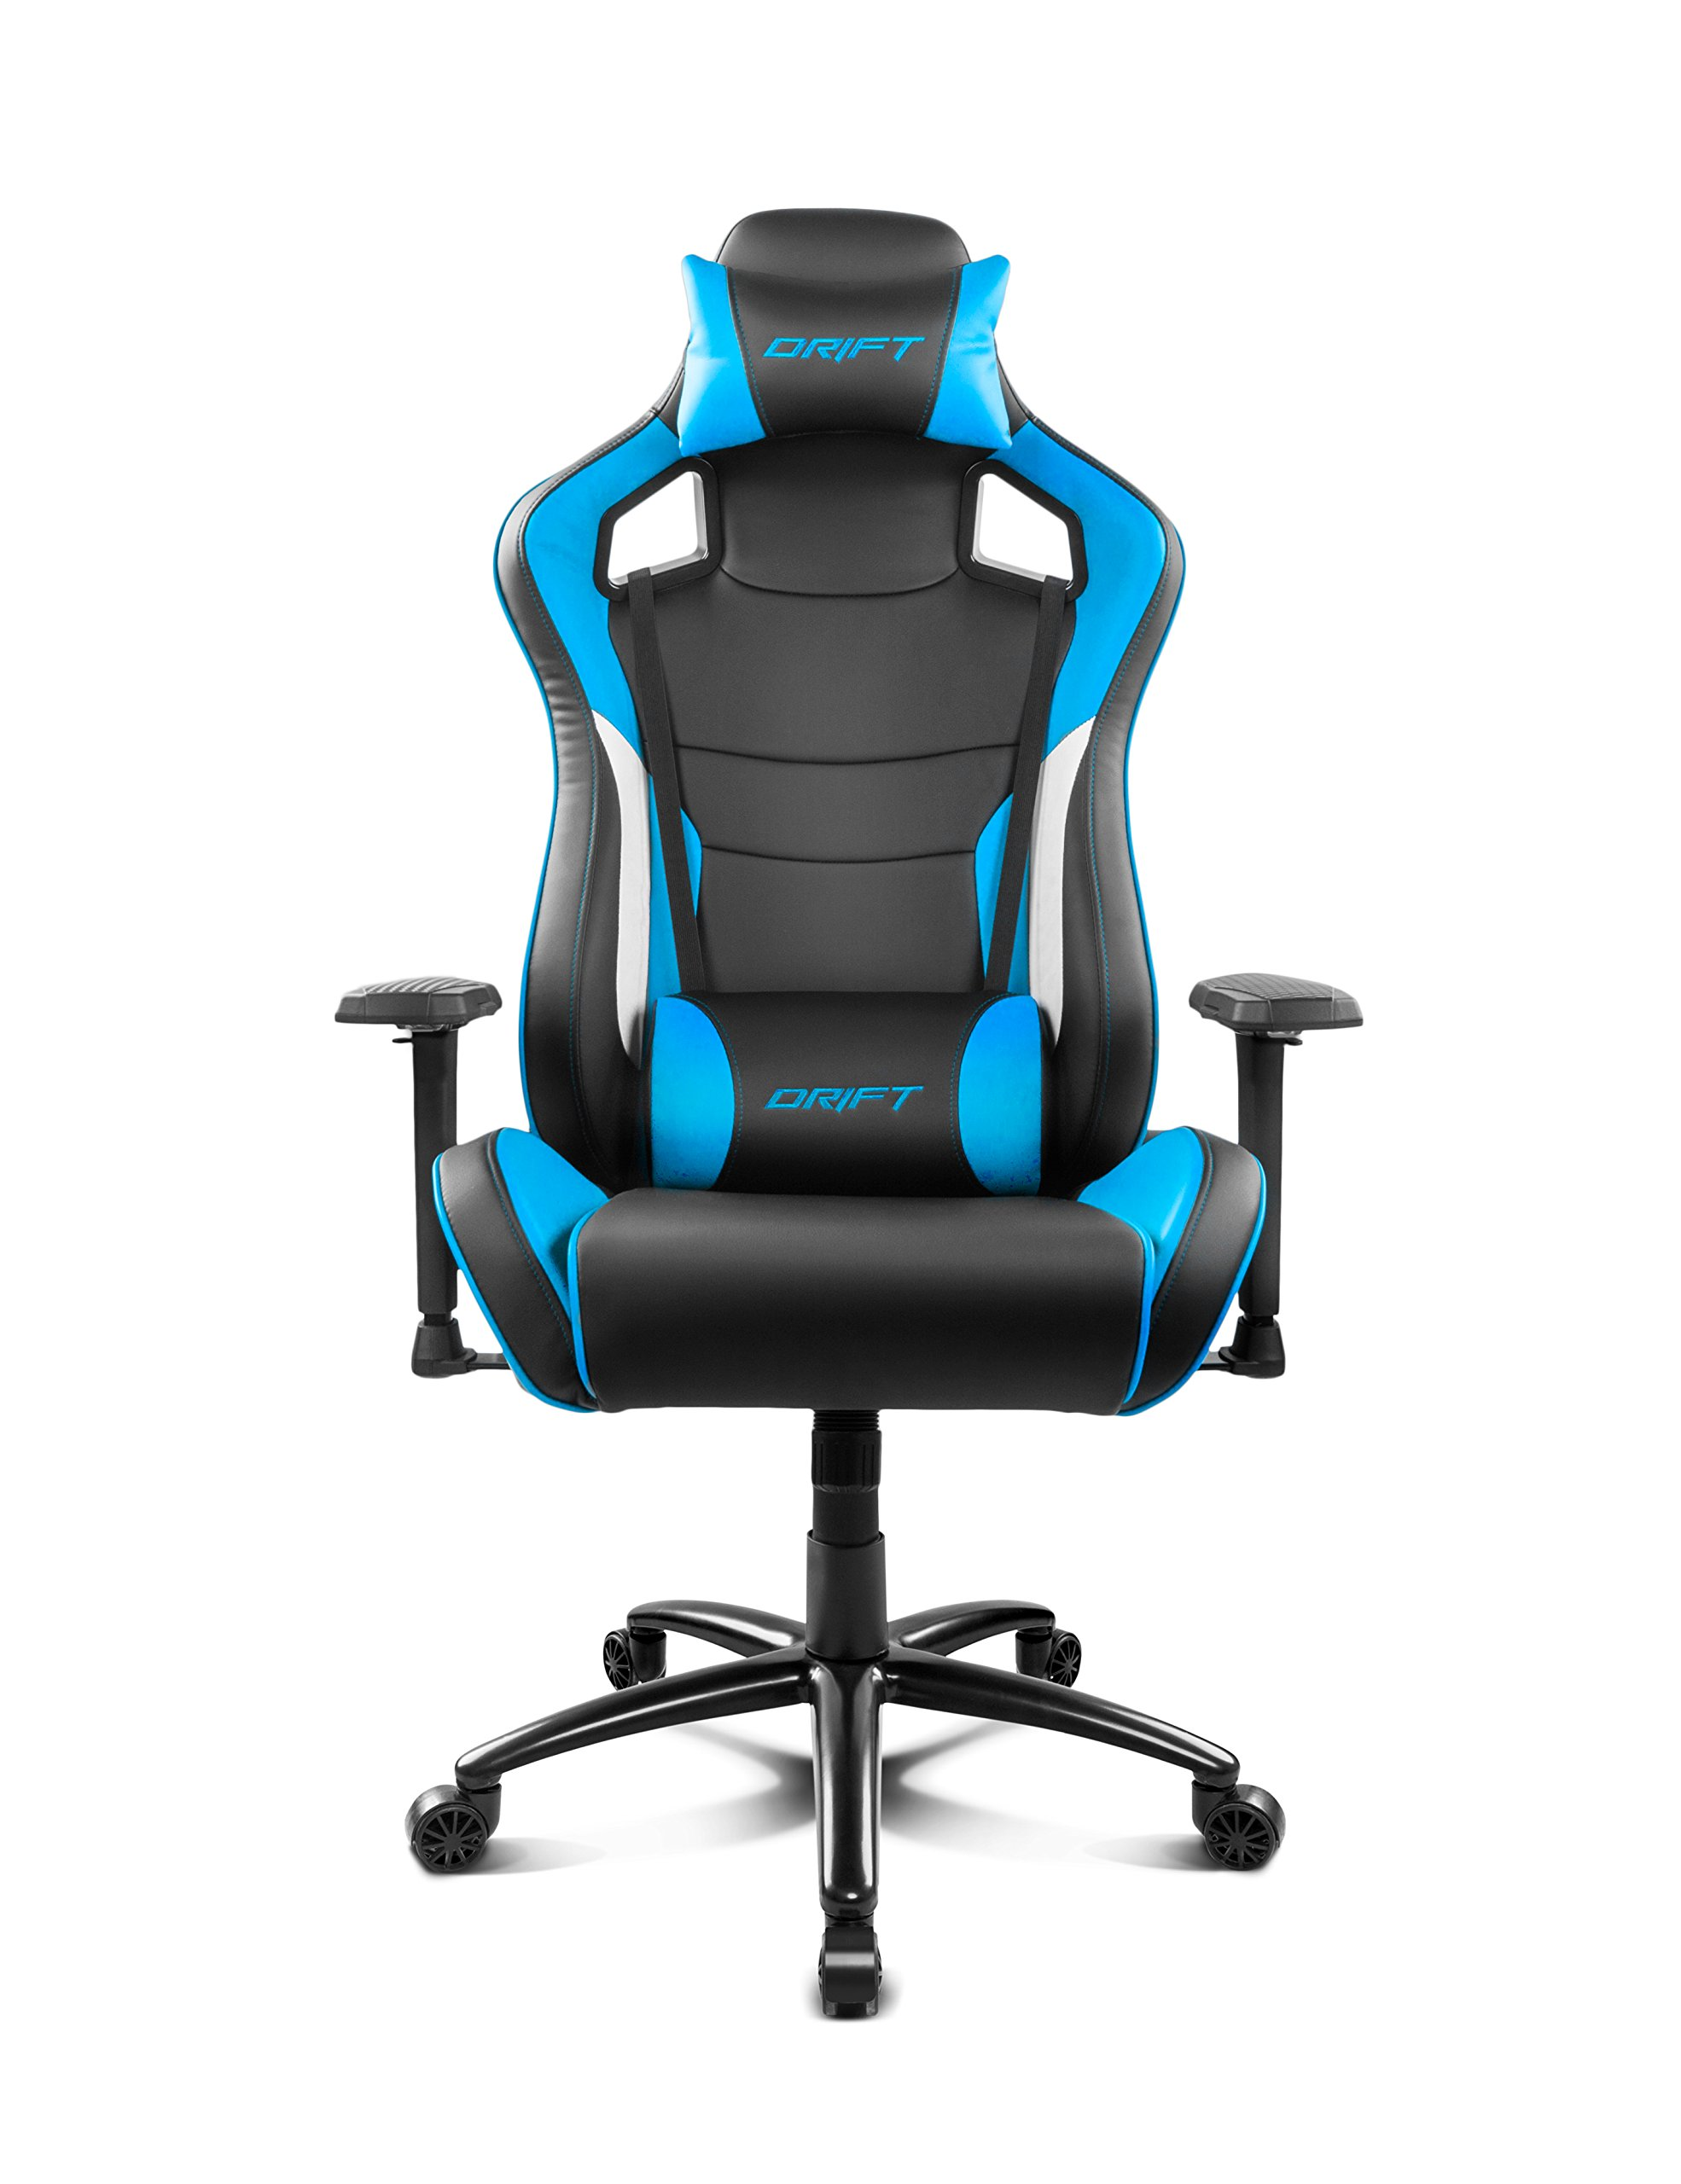 81pI0Qq1AcL - Drift DR400BL - Silla Gaming, Color Negro y Azul